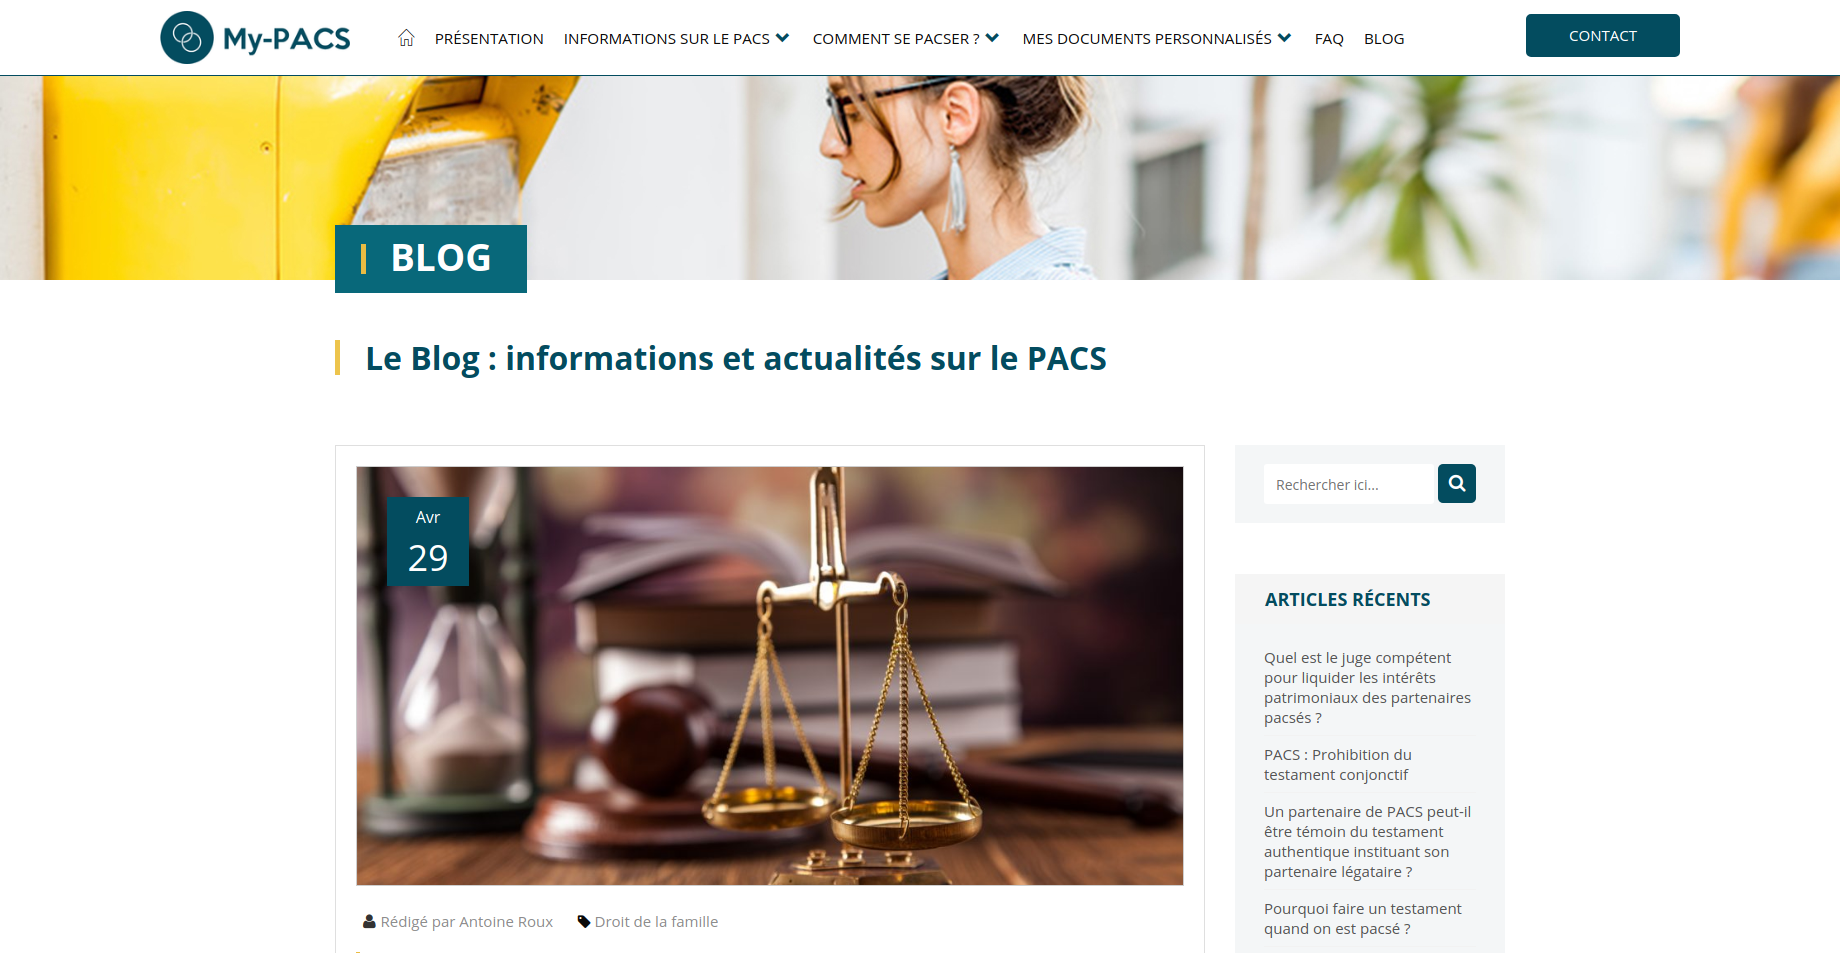 My-PACS blog